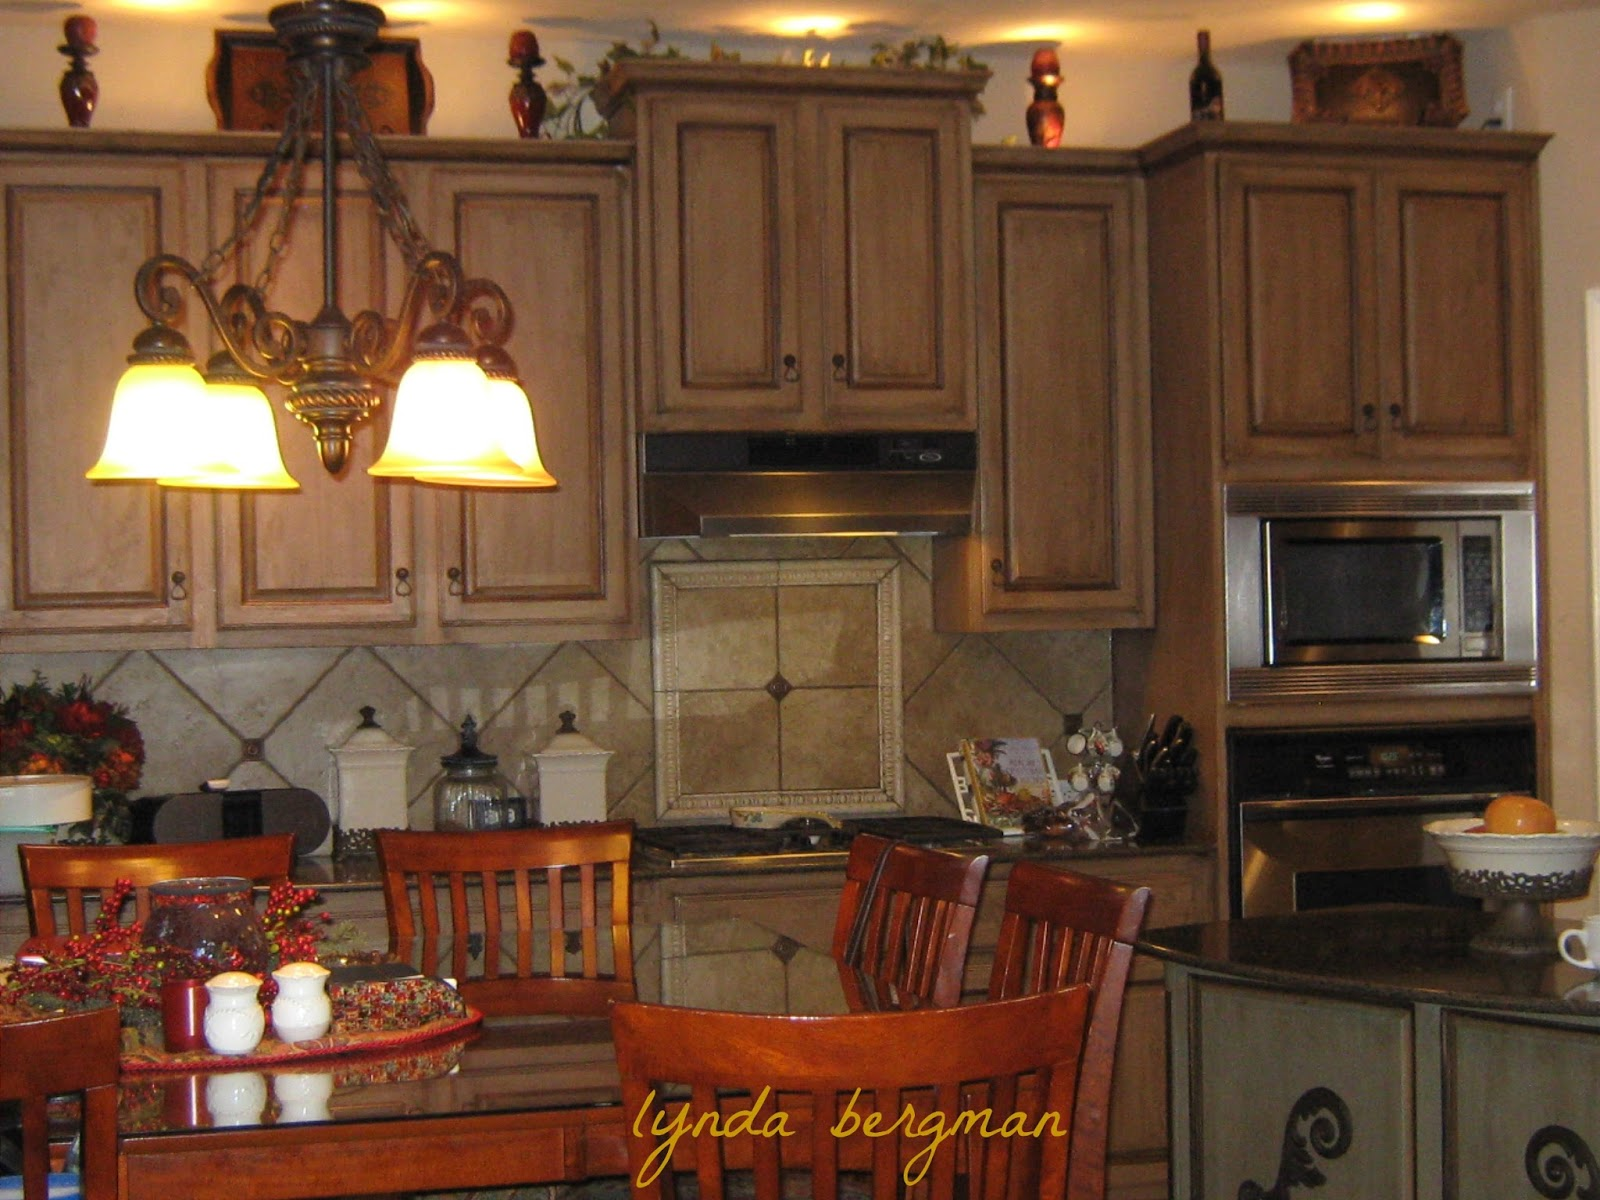 SPECIAL TUSCAN FINISH I PAINTED ON JACKIEu0027S KITCHEN CABINETS REVISITED